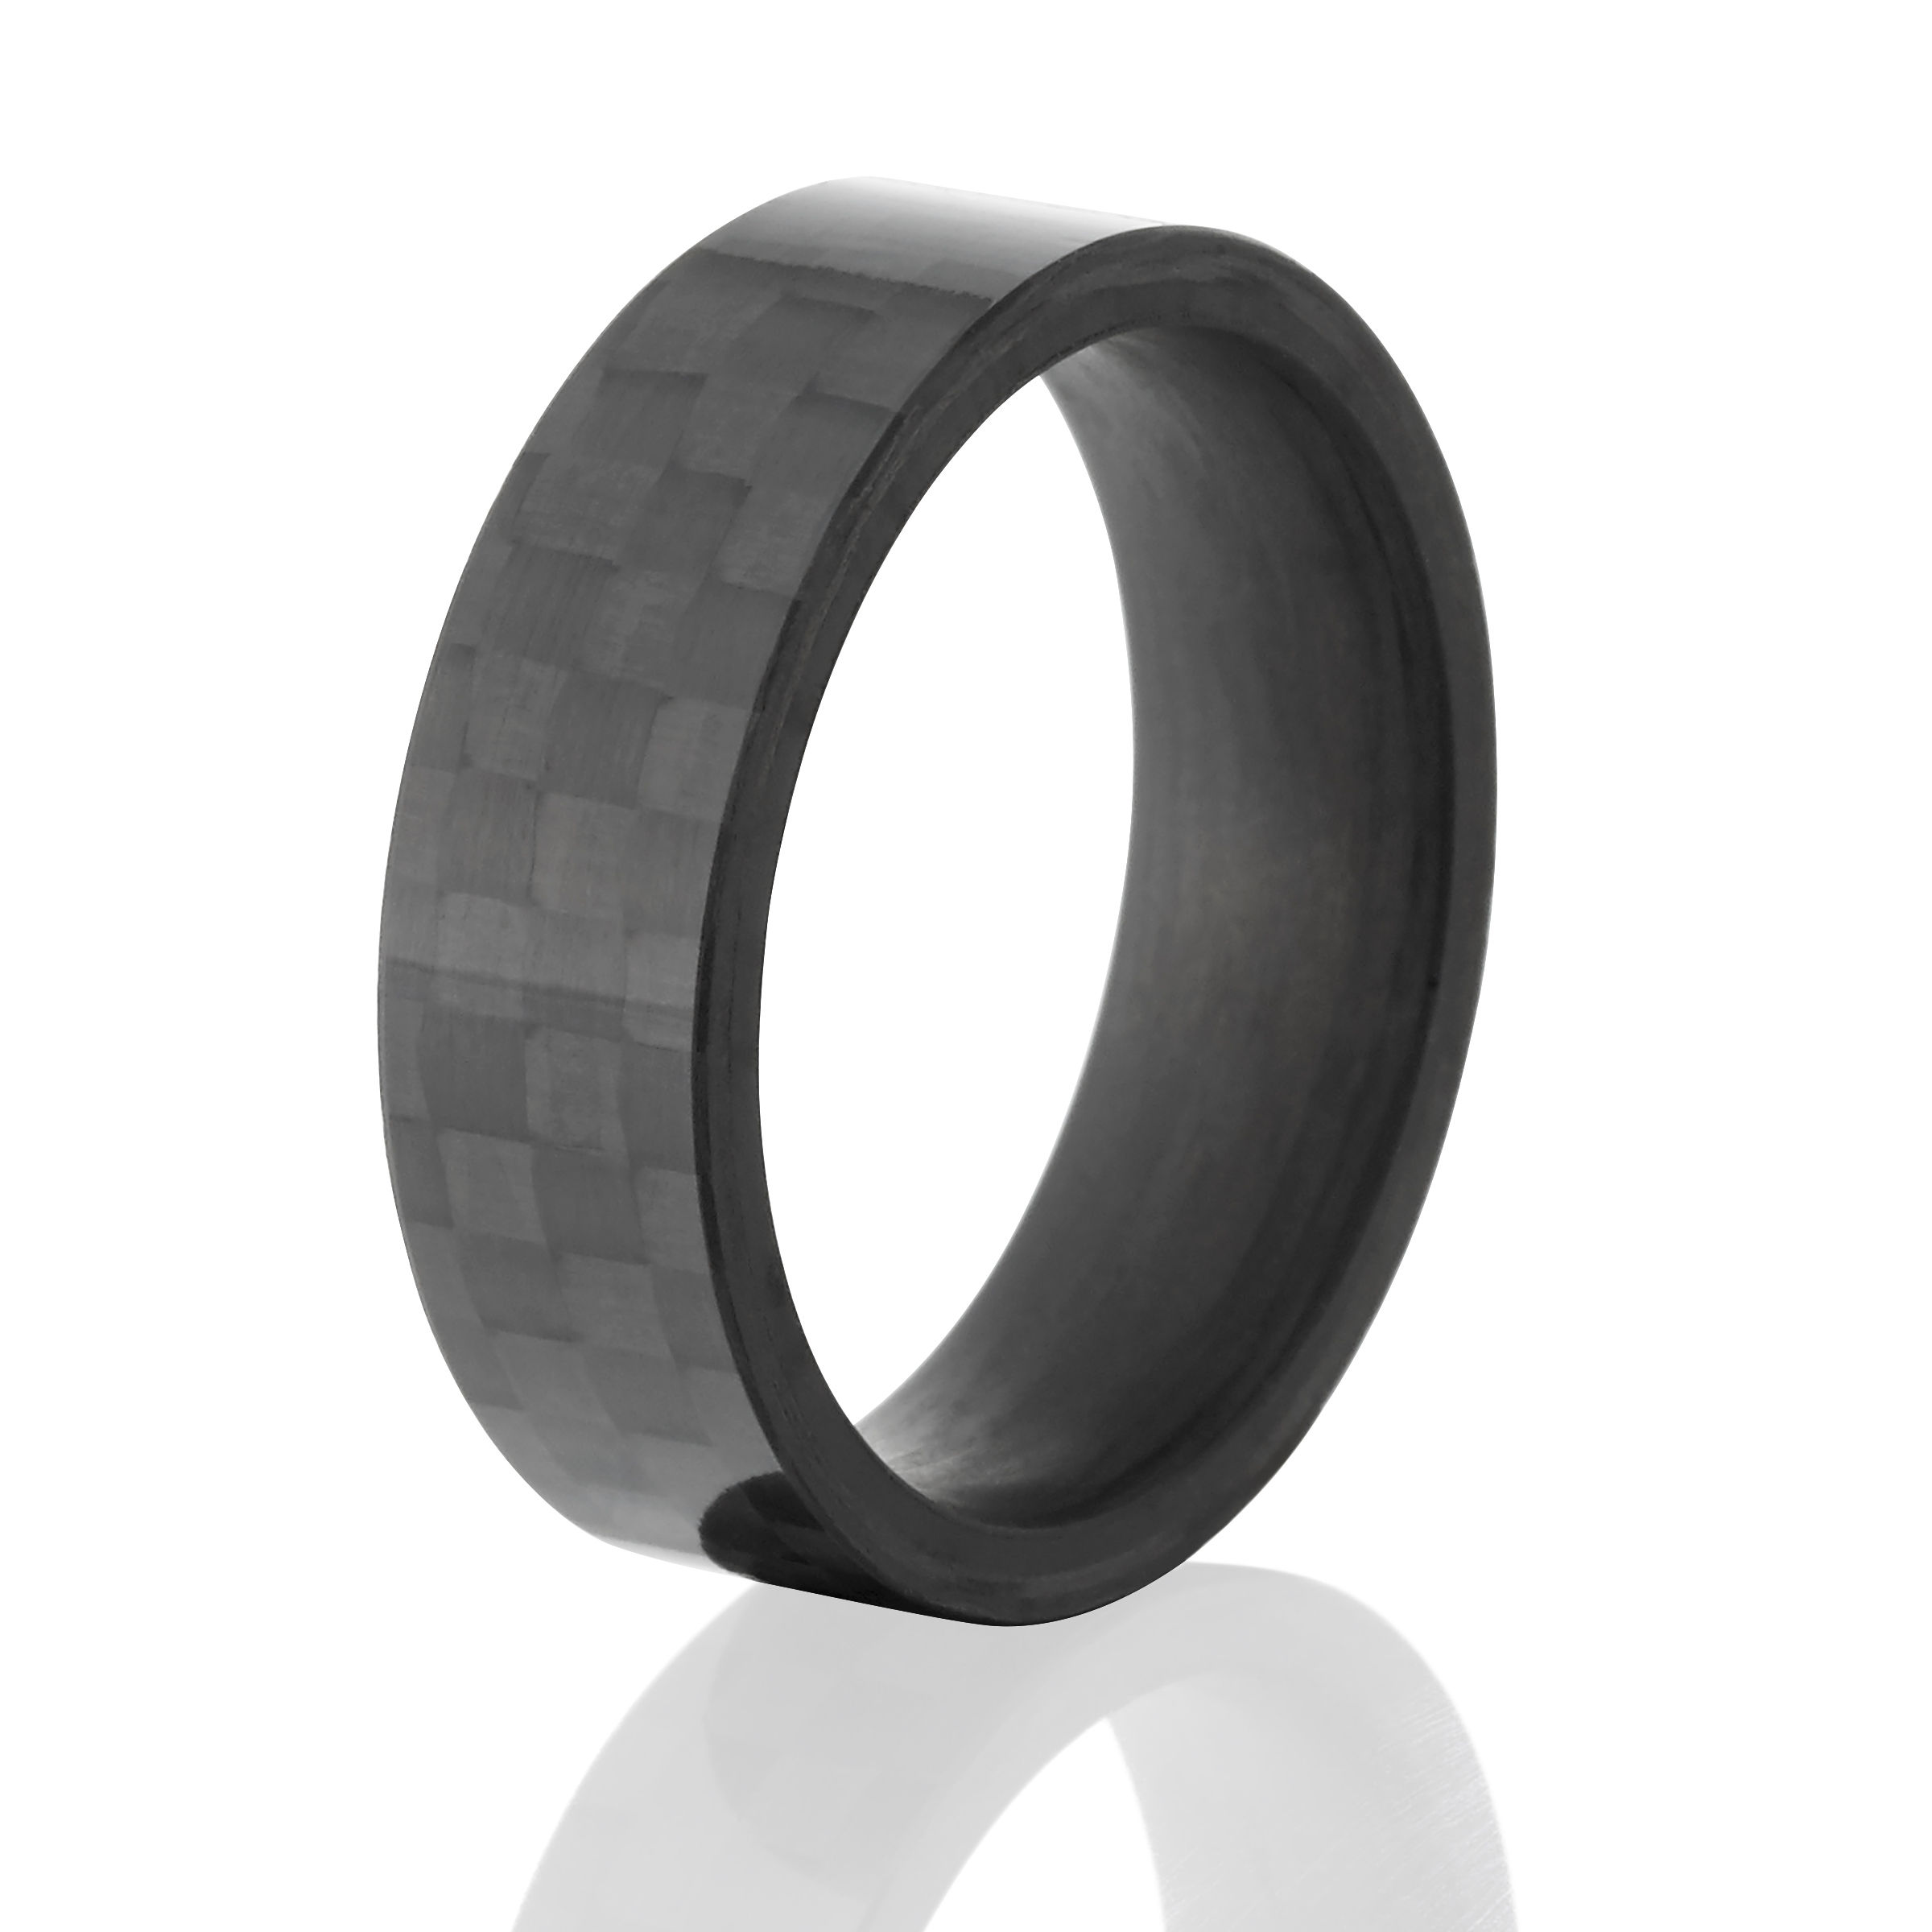 new wedding ring rings real polished oliver paul brookline products carbon fiber domed